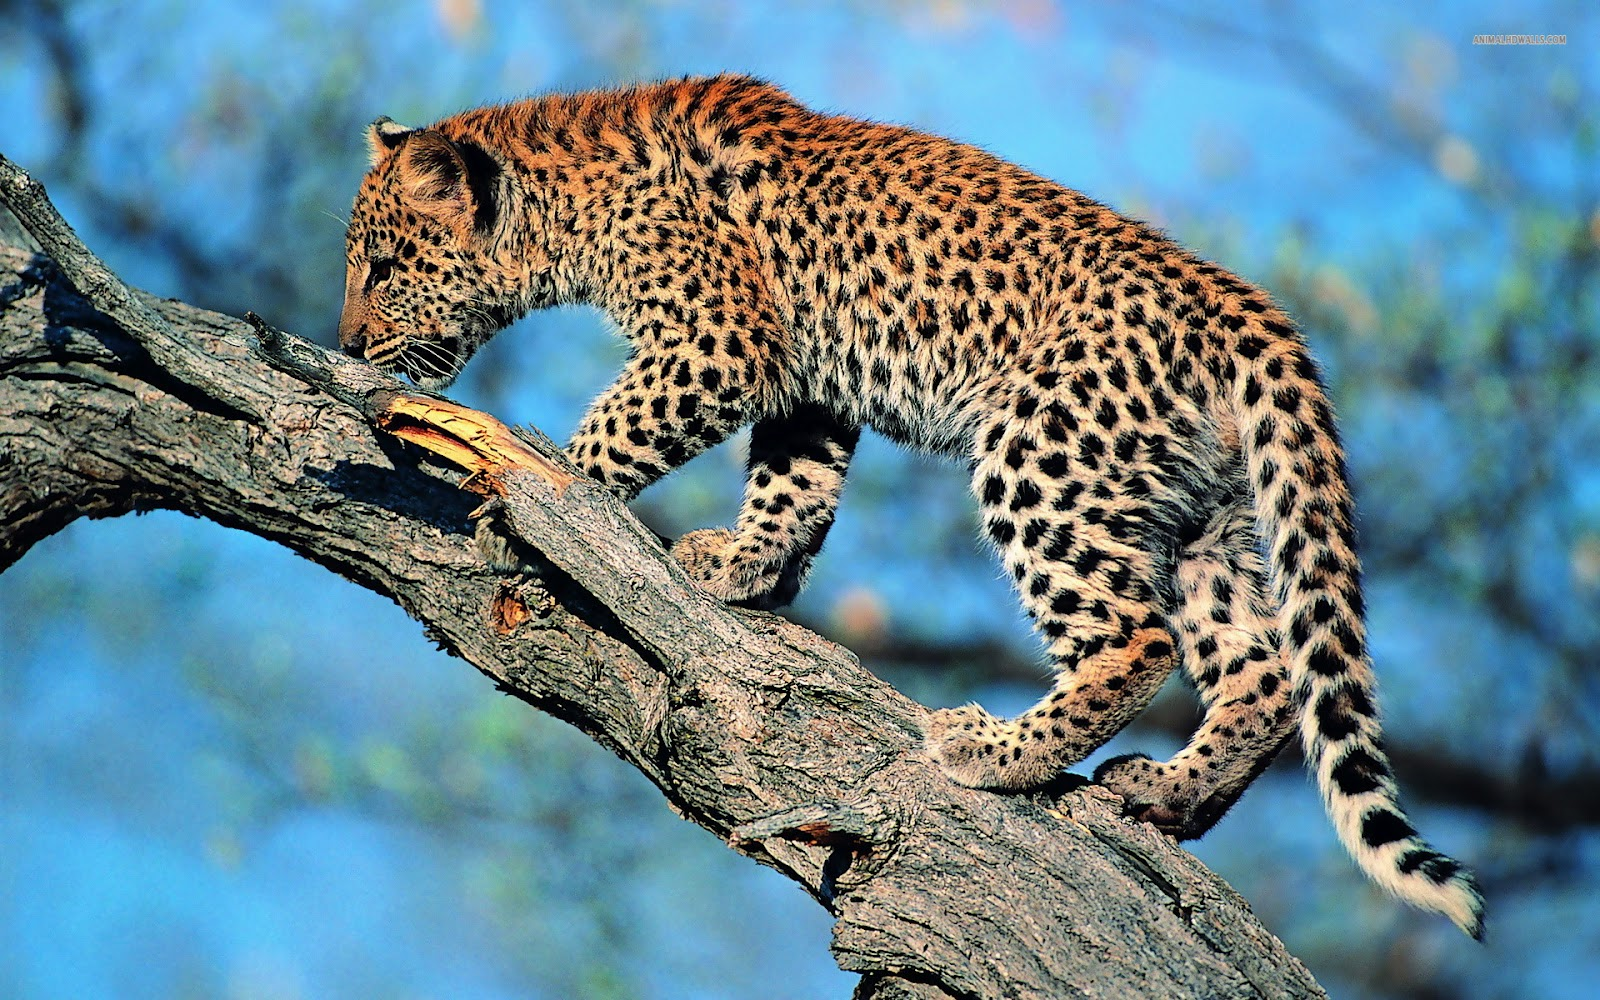 Leopard Latest New Hd Wallpapers 2012 Wallpapers World